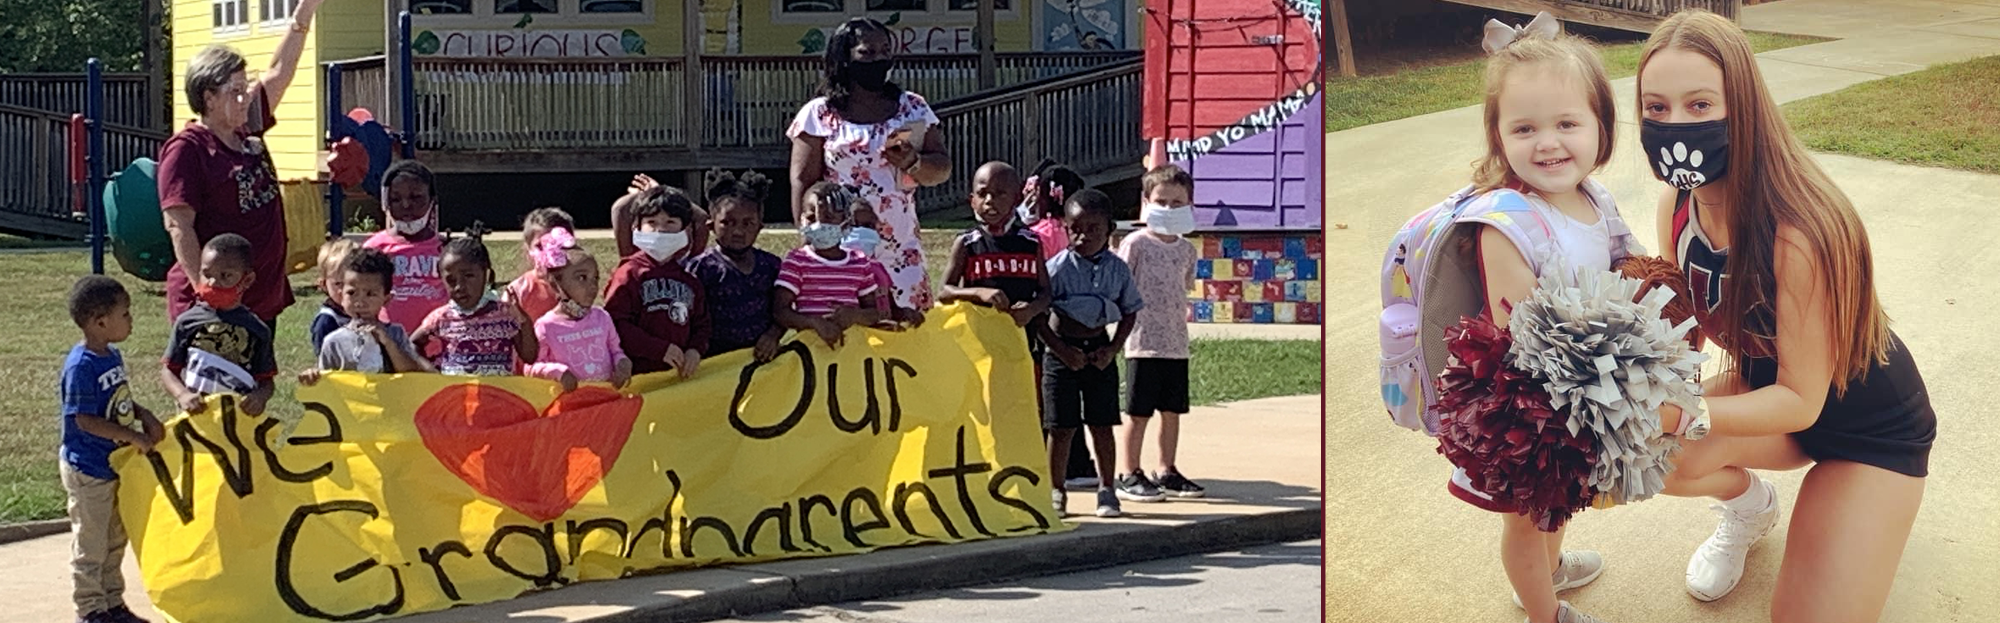 young students with We Love Grandparents sign